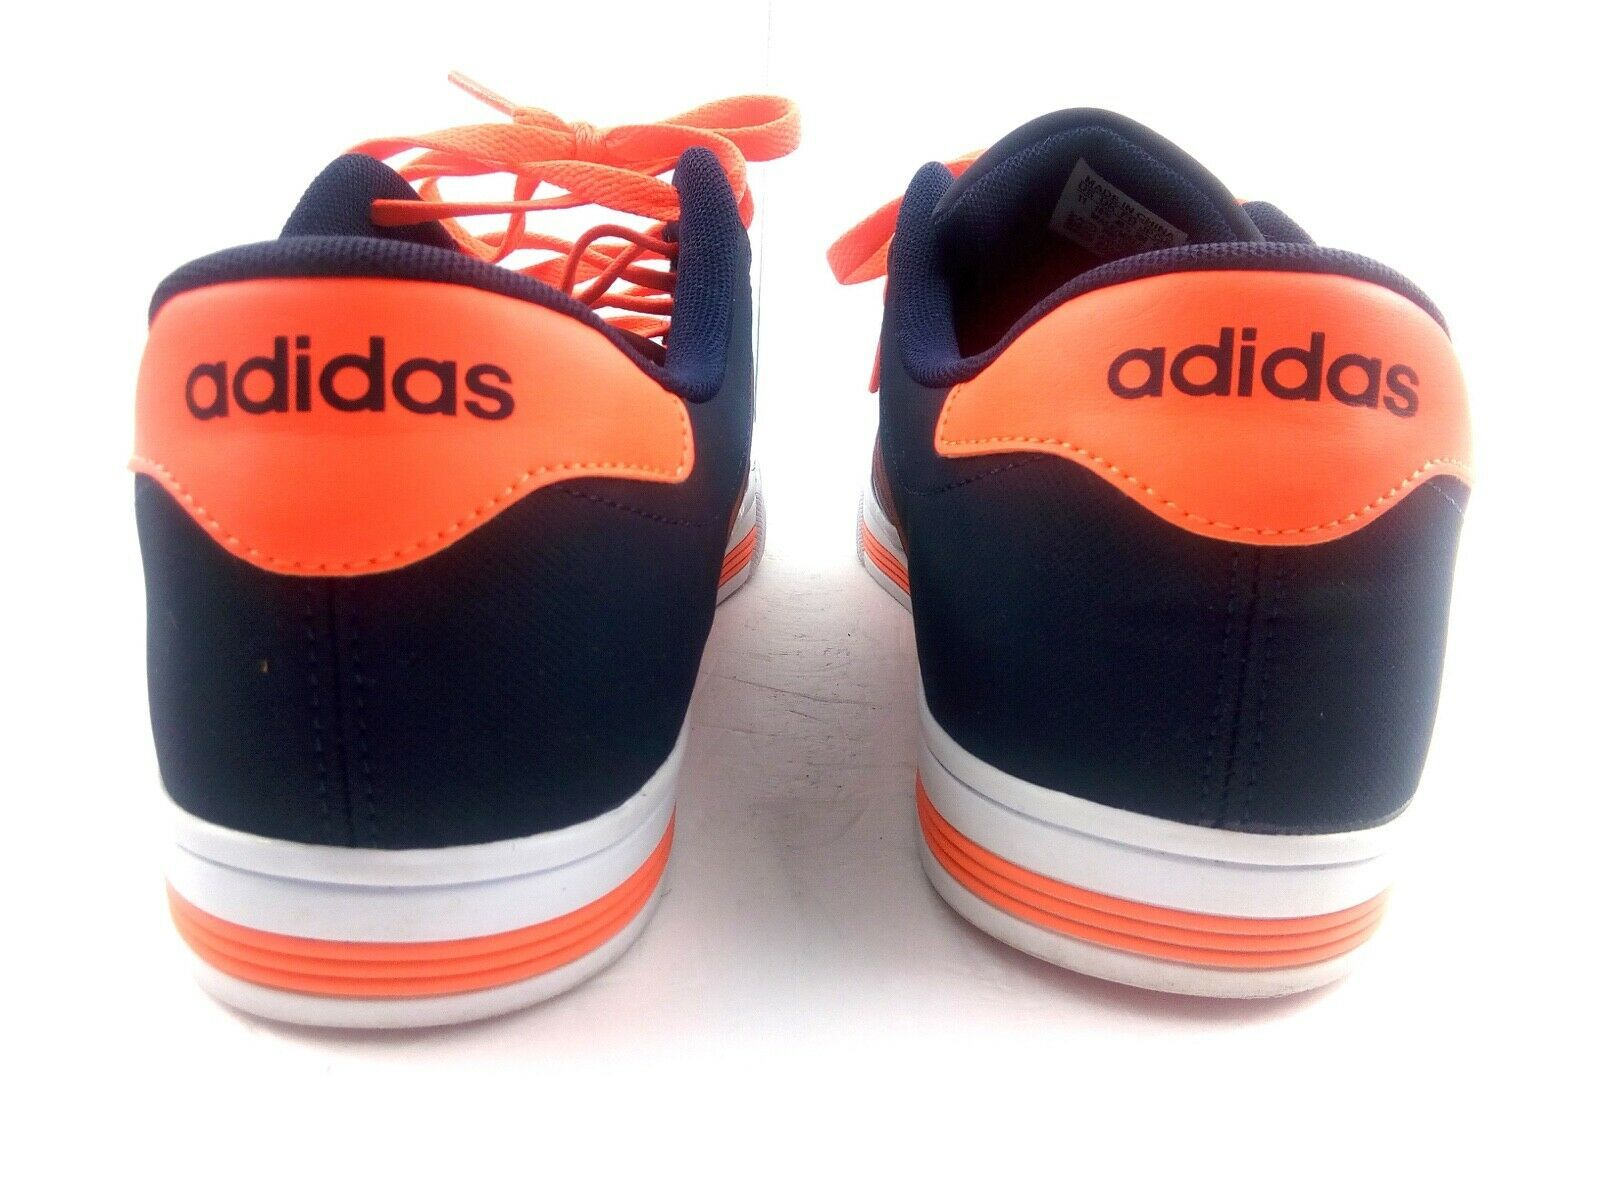 Adidas Men's Sneakers Neo Cloudfoam Daily Team F99628 Blue / Orange Shoes Sz 11